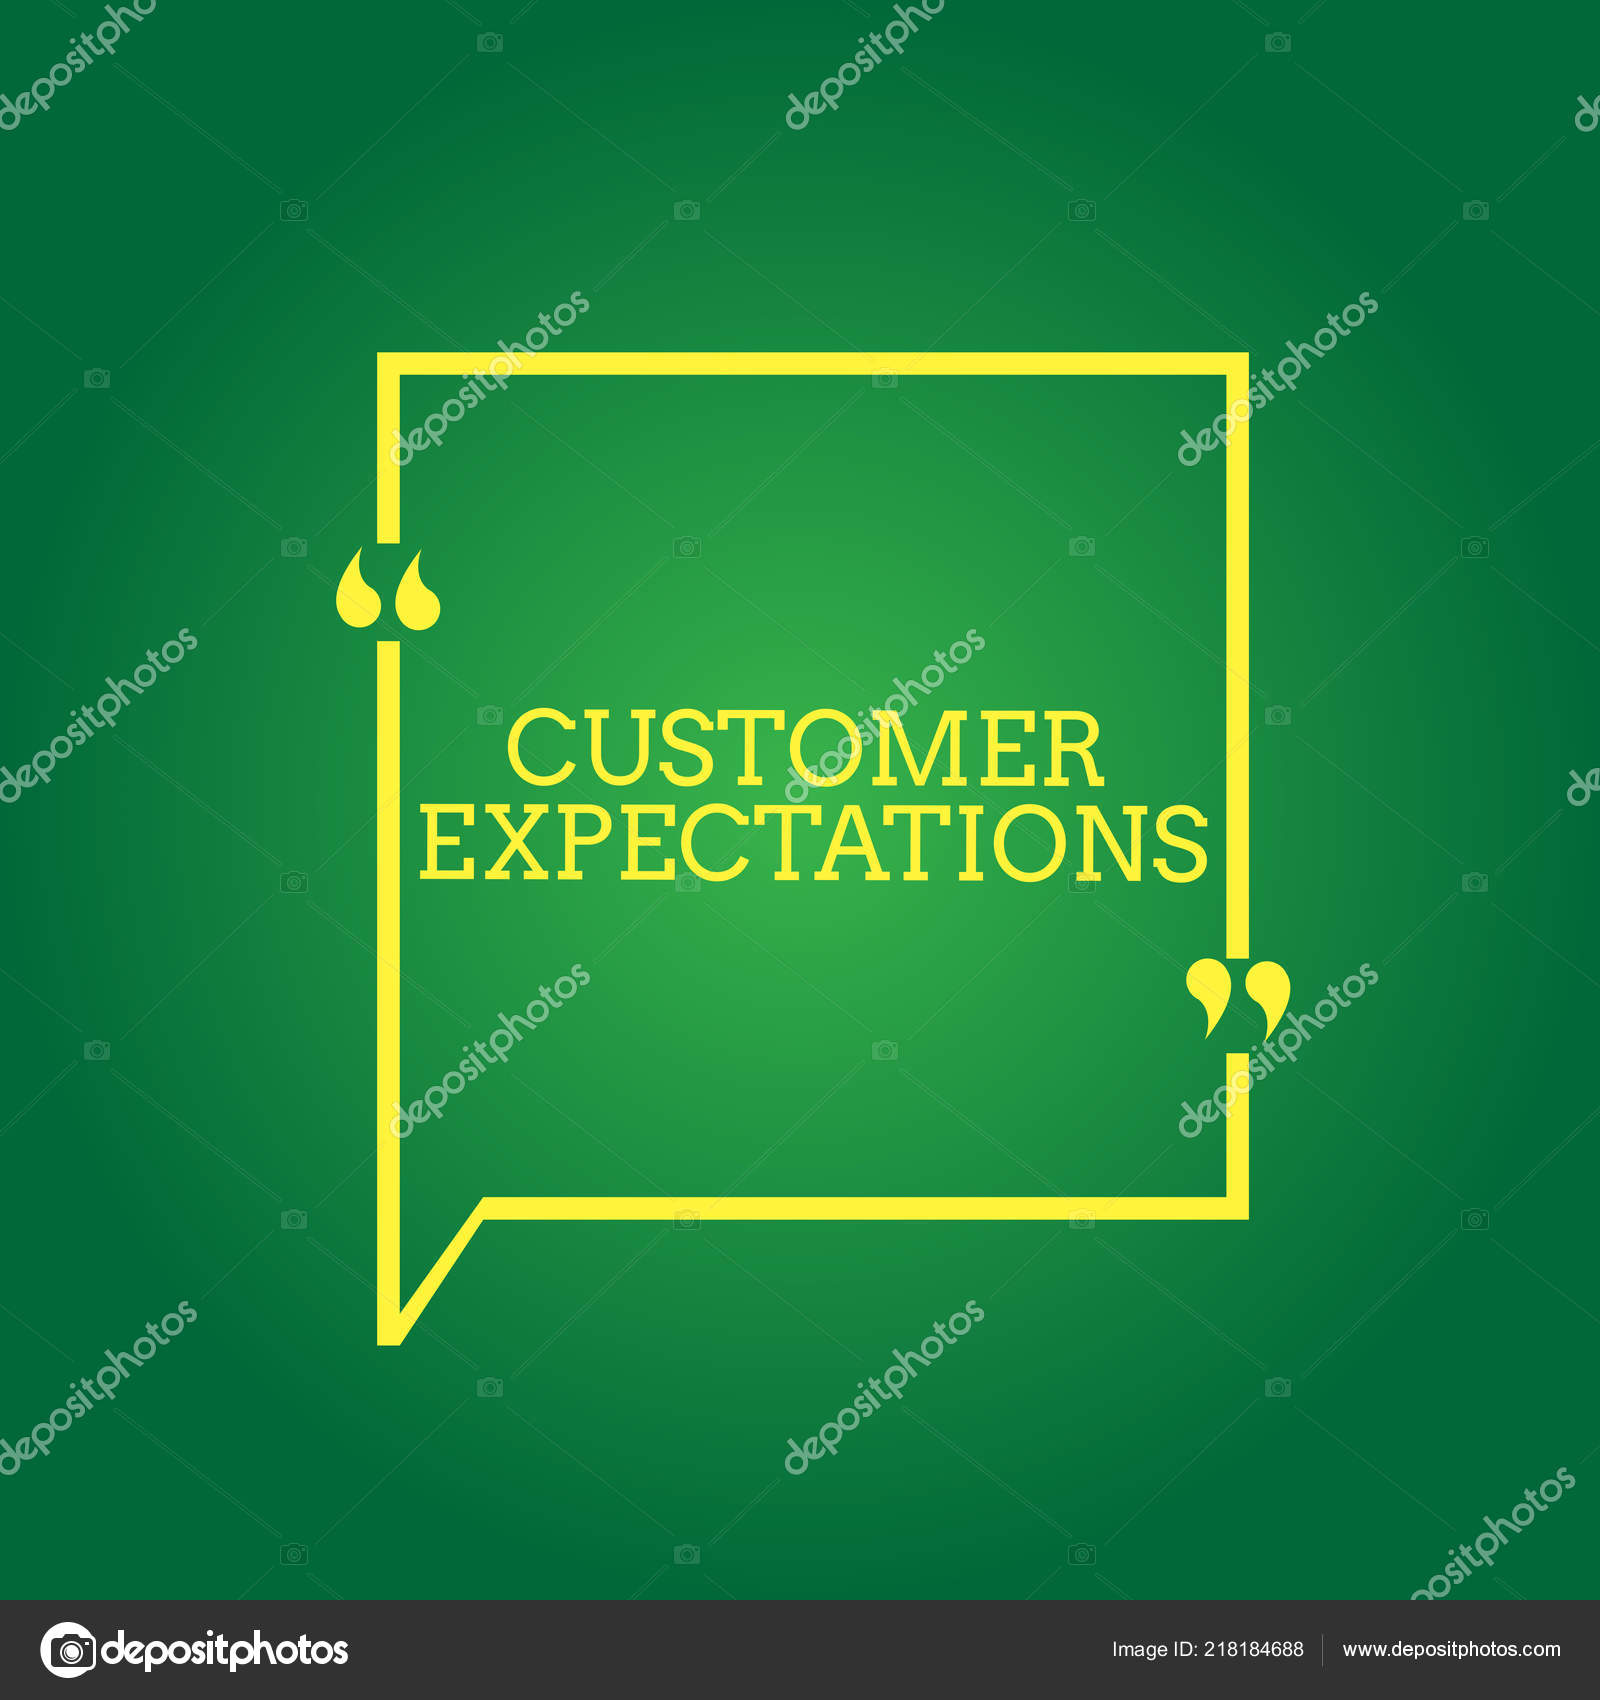 customer needs and expectations 12 examples of customer expectations posted by john spacey, january 26, 2017 customer expectations are the base assumptions that customers make about your brand, services and products when expectations aren't met for one reason or another customers may be either positively or negatively surprised  customer needs a list of common types of.